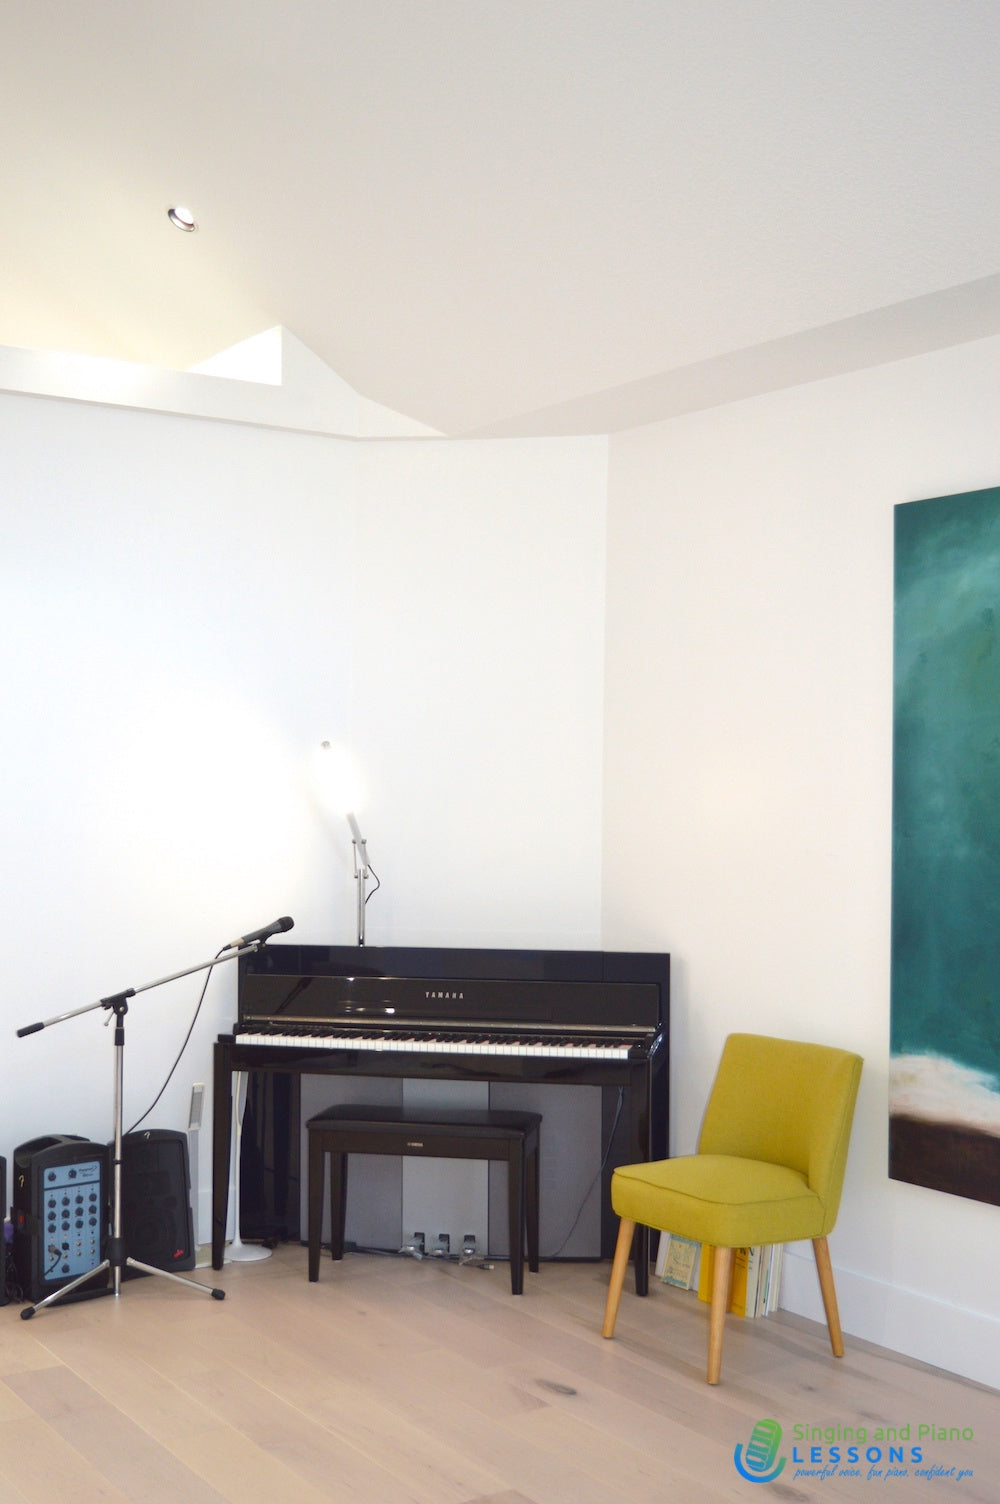 Private Singing Piano Lessons Online via Skype 2